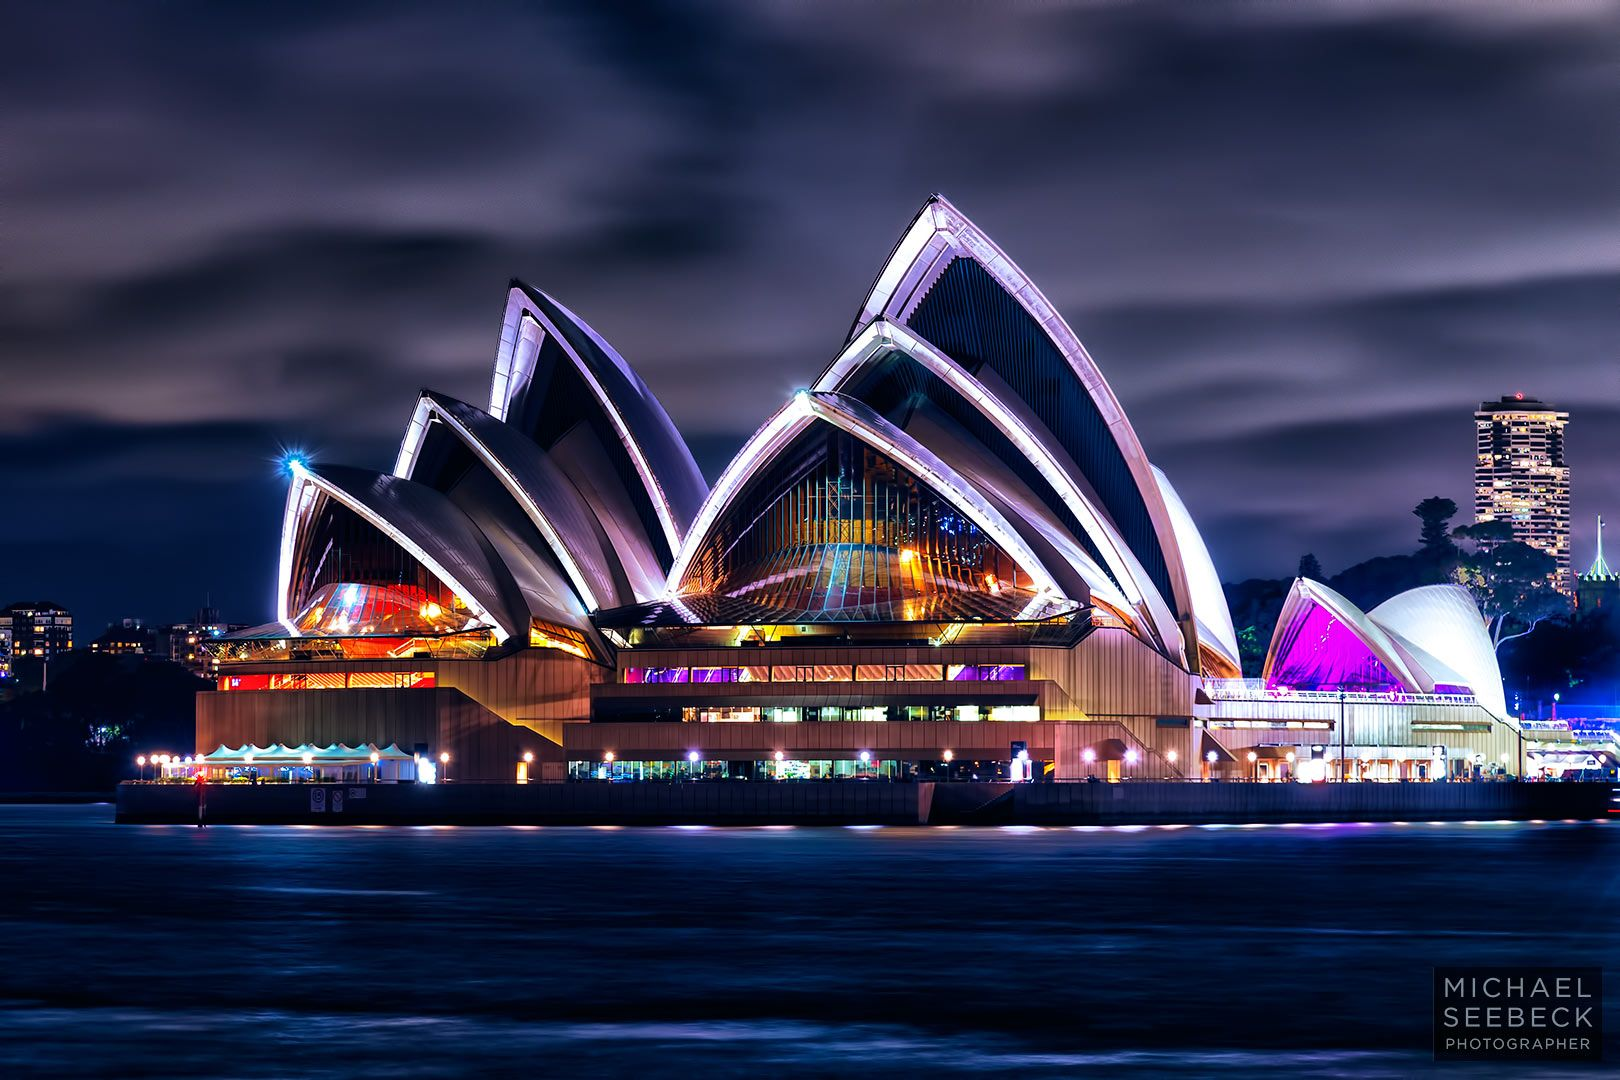 national geographic engineering connections sydney opera house - photo#12